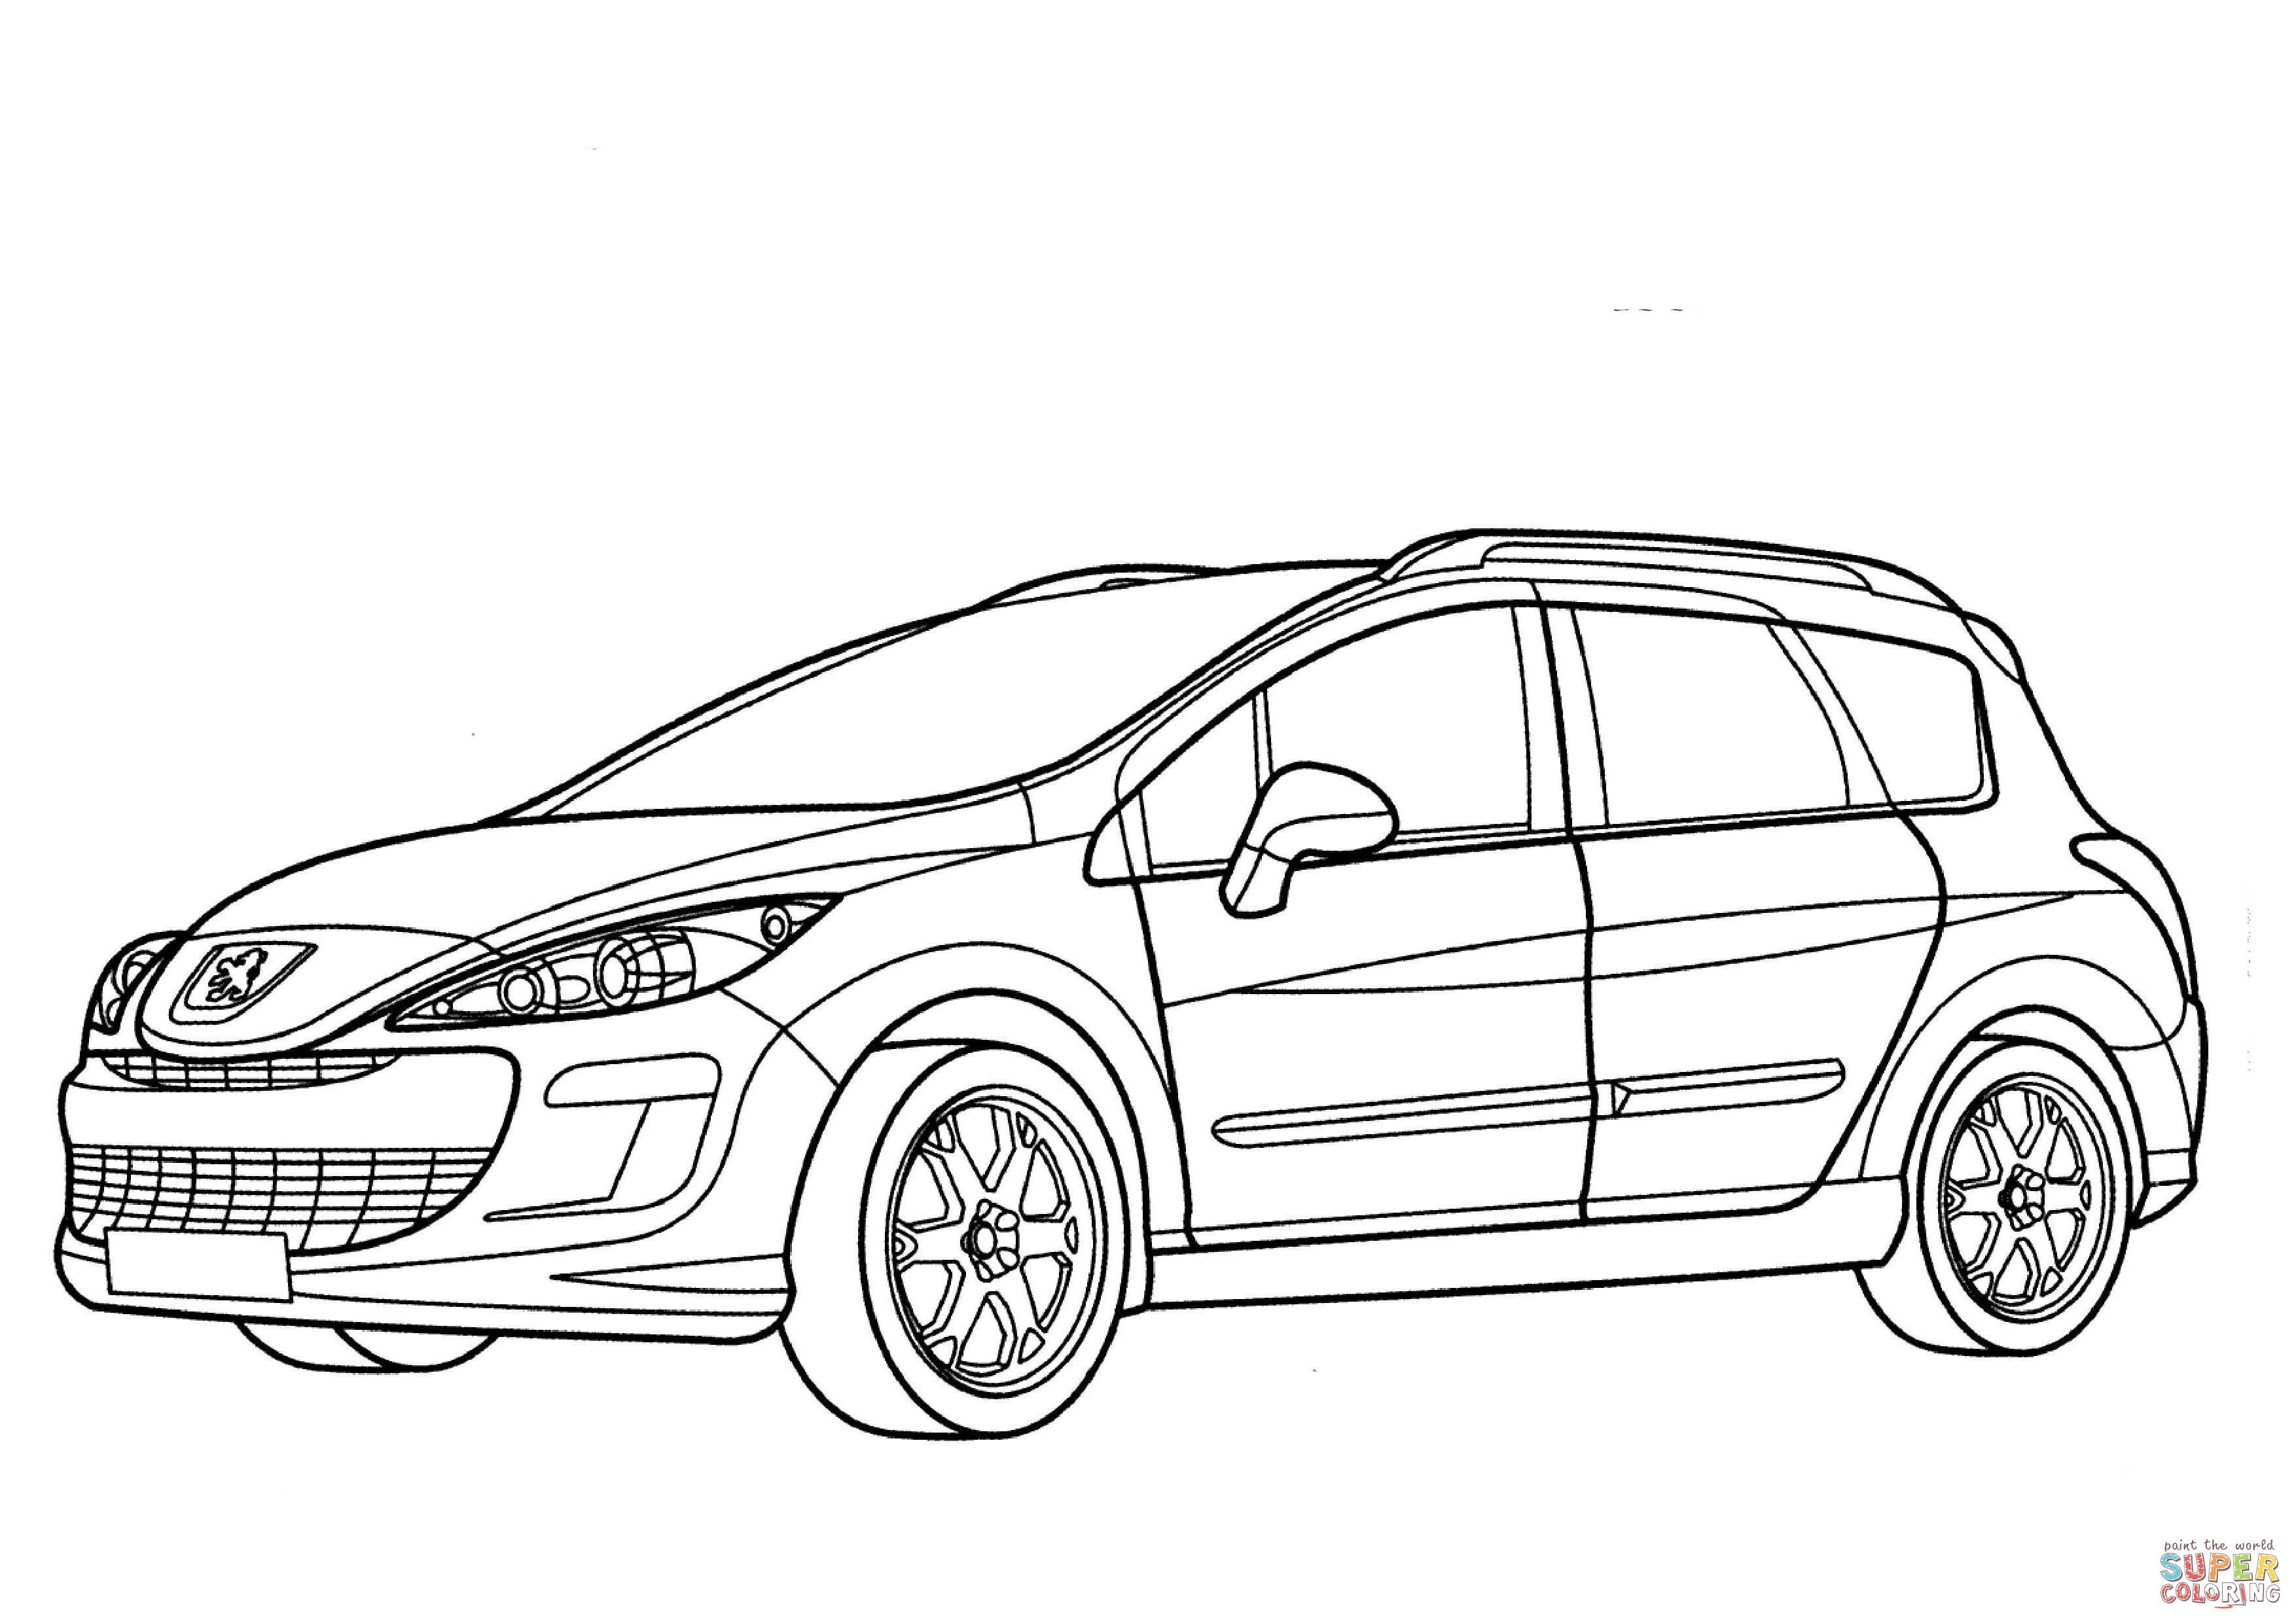 3508x2480 Peugeot 308 Sw Coloring Page Free Printable Coloring Pages